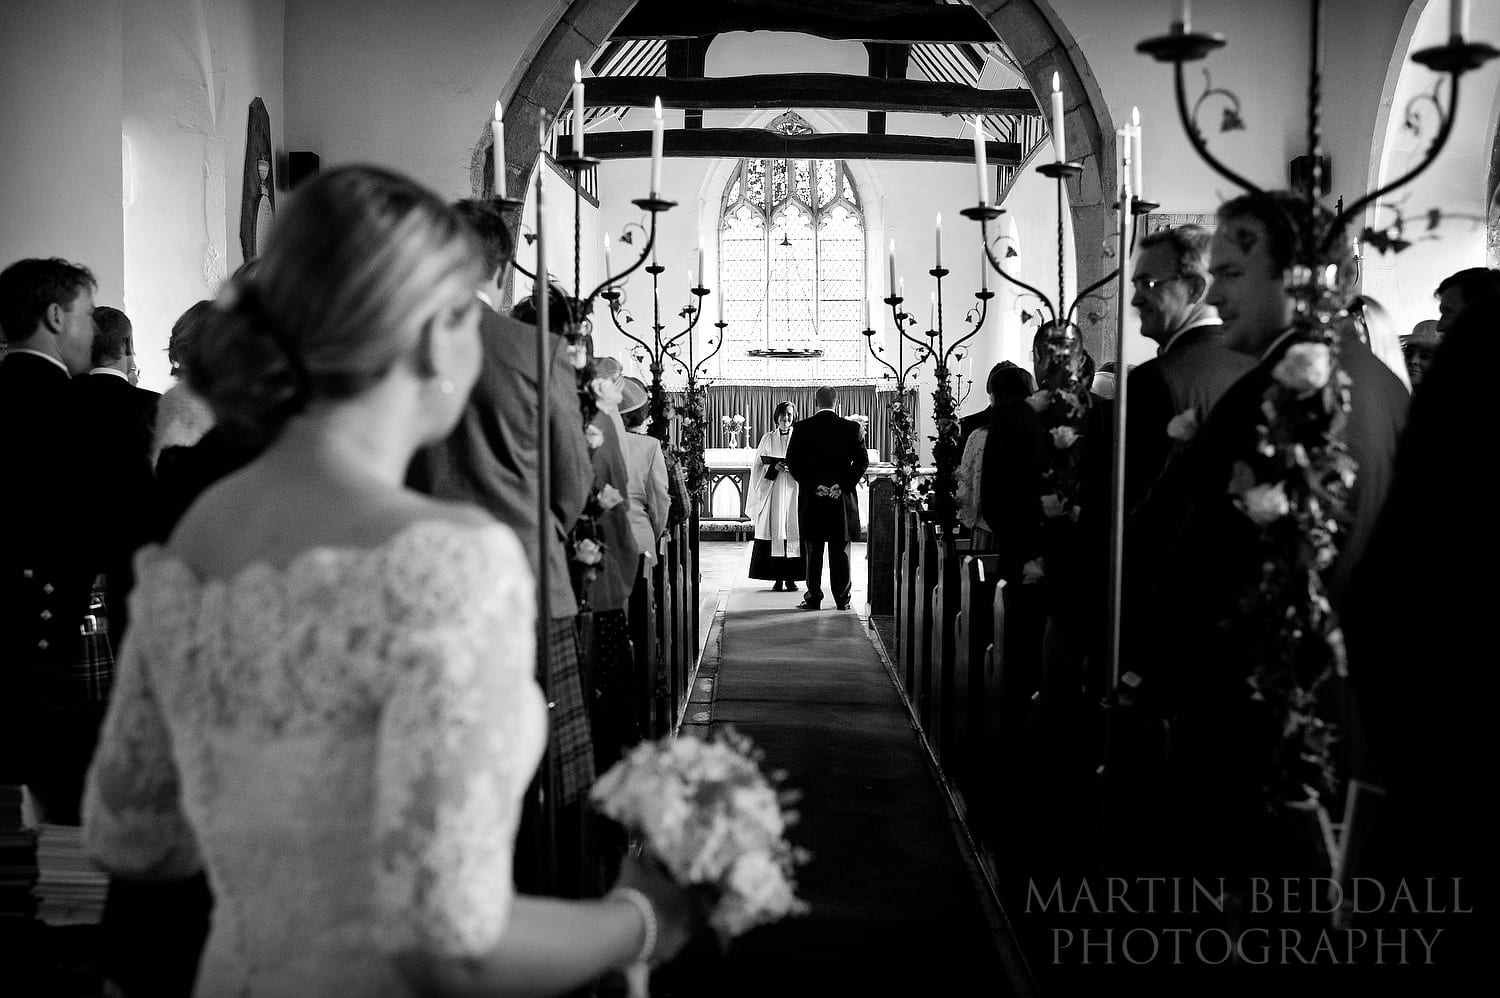 Wedding photography in 2012